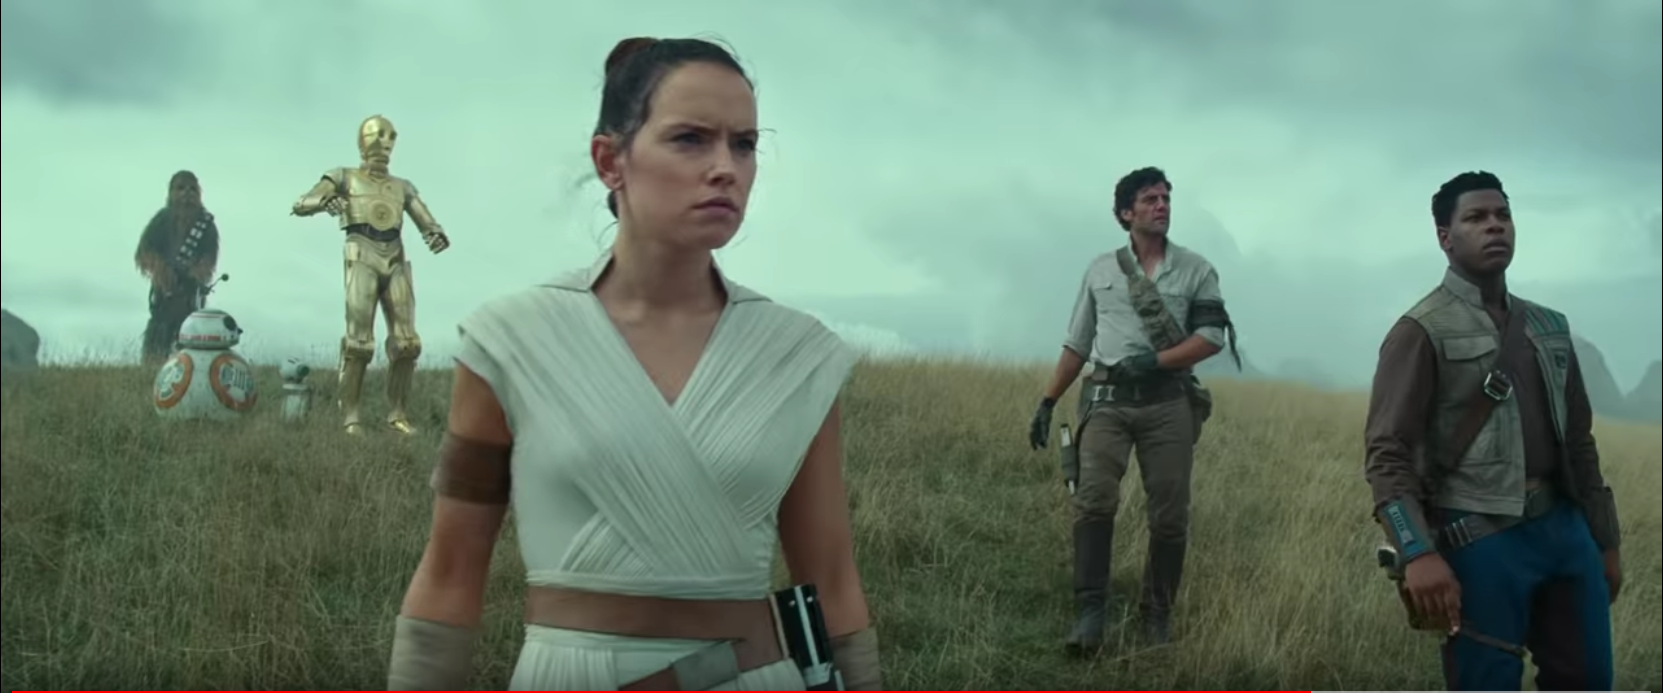 Screenshot_2019-04-12 Star Wars Episode IX – Teaser - YouTube(18).png